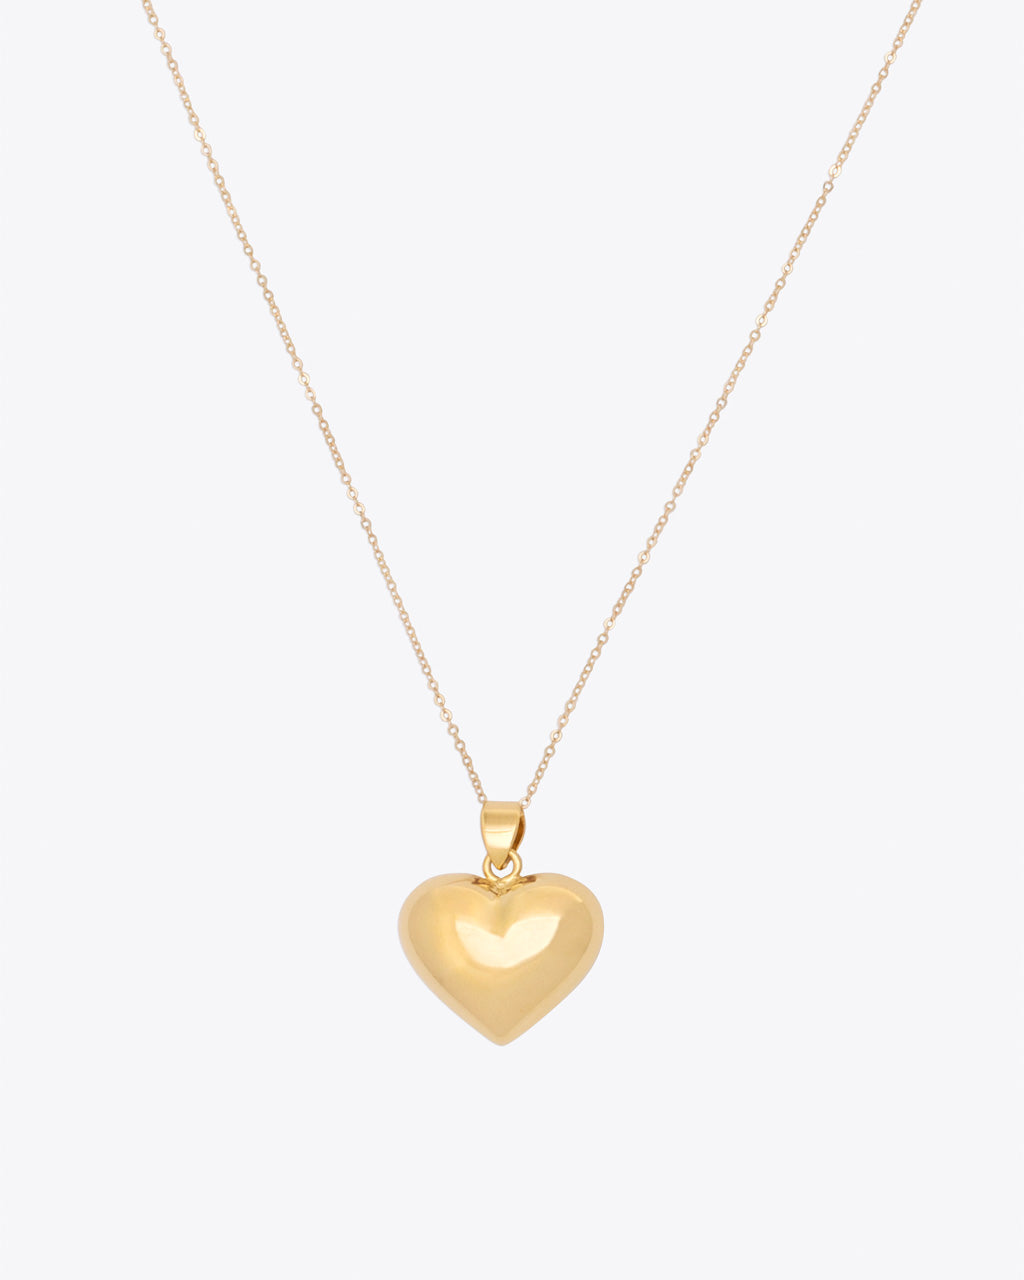 Gold heart pendant on gold chain